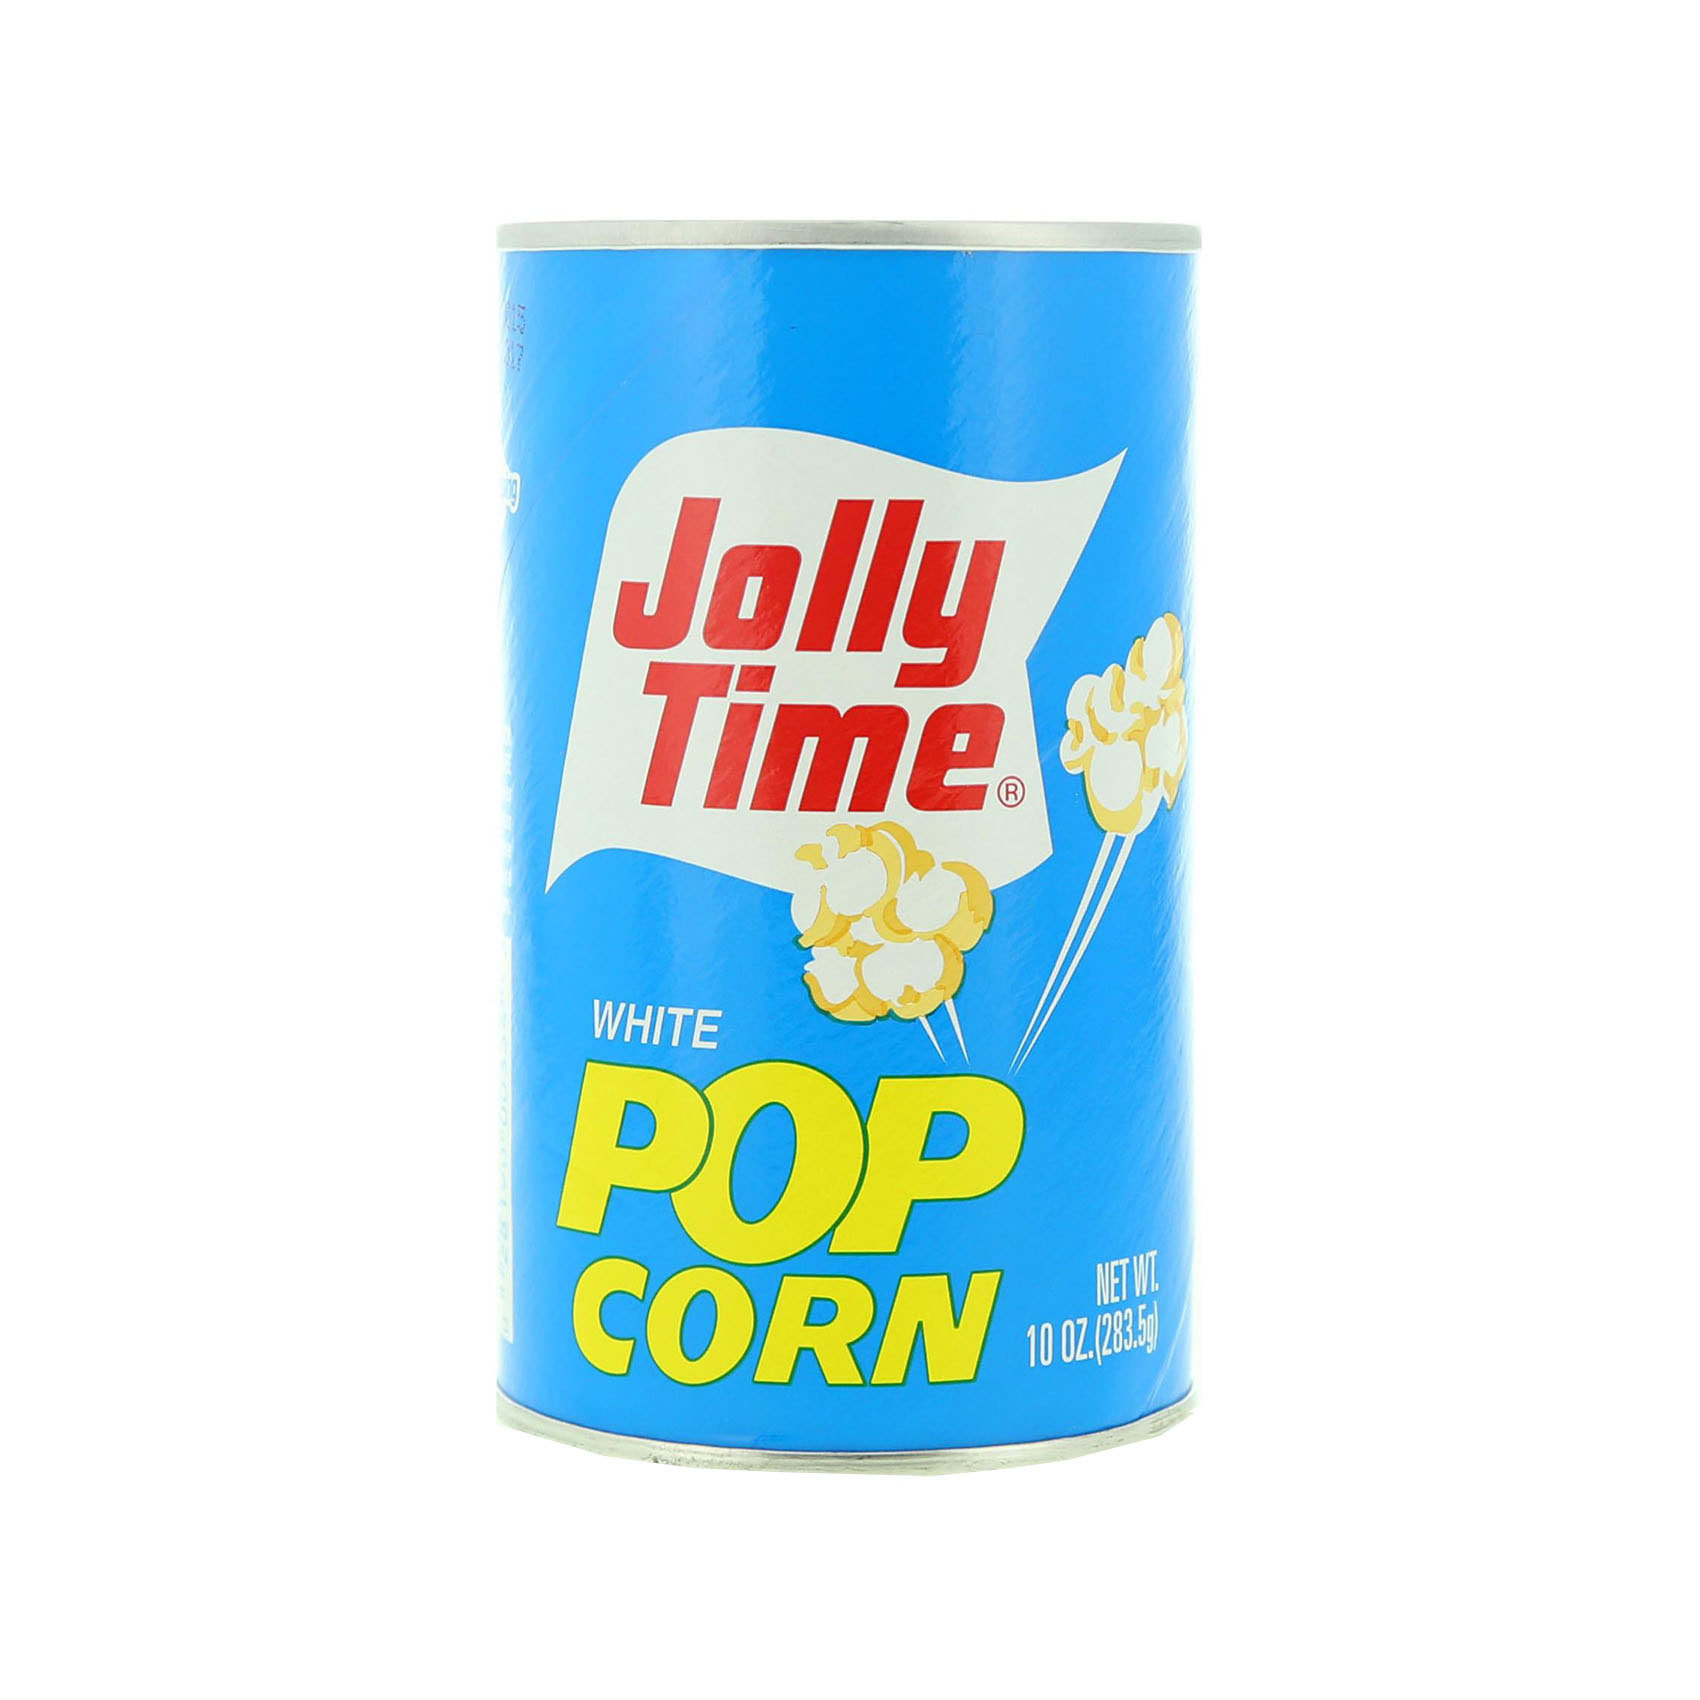 JOLLY TIME WHITE PULL CANS 284GR